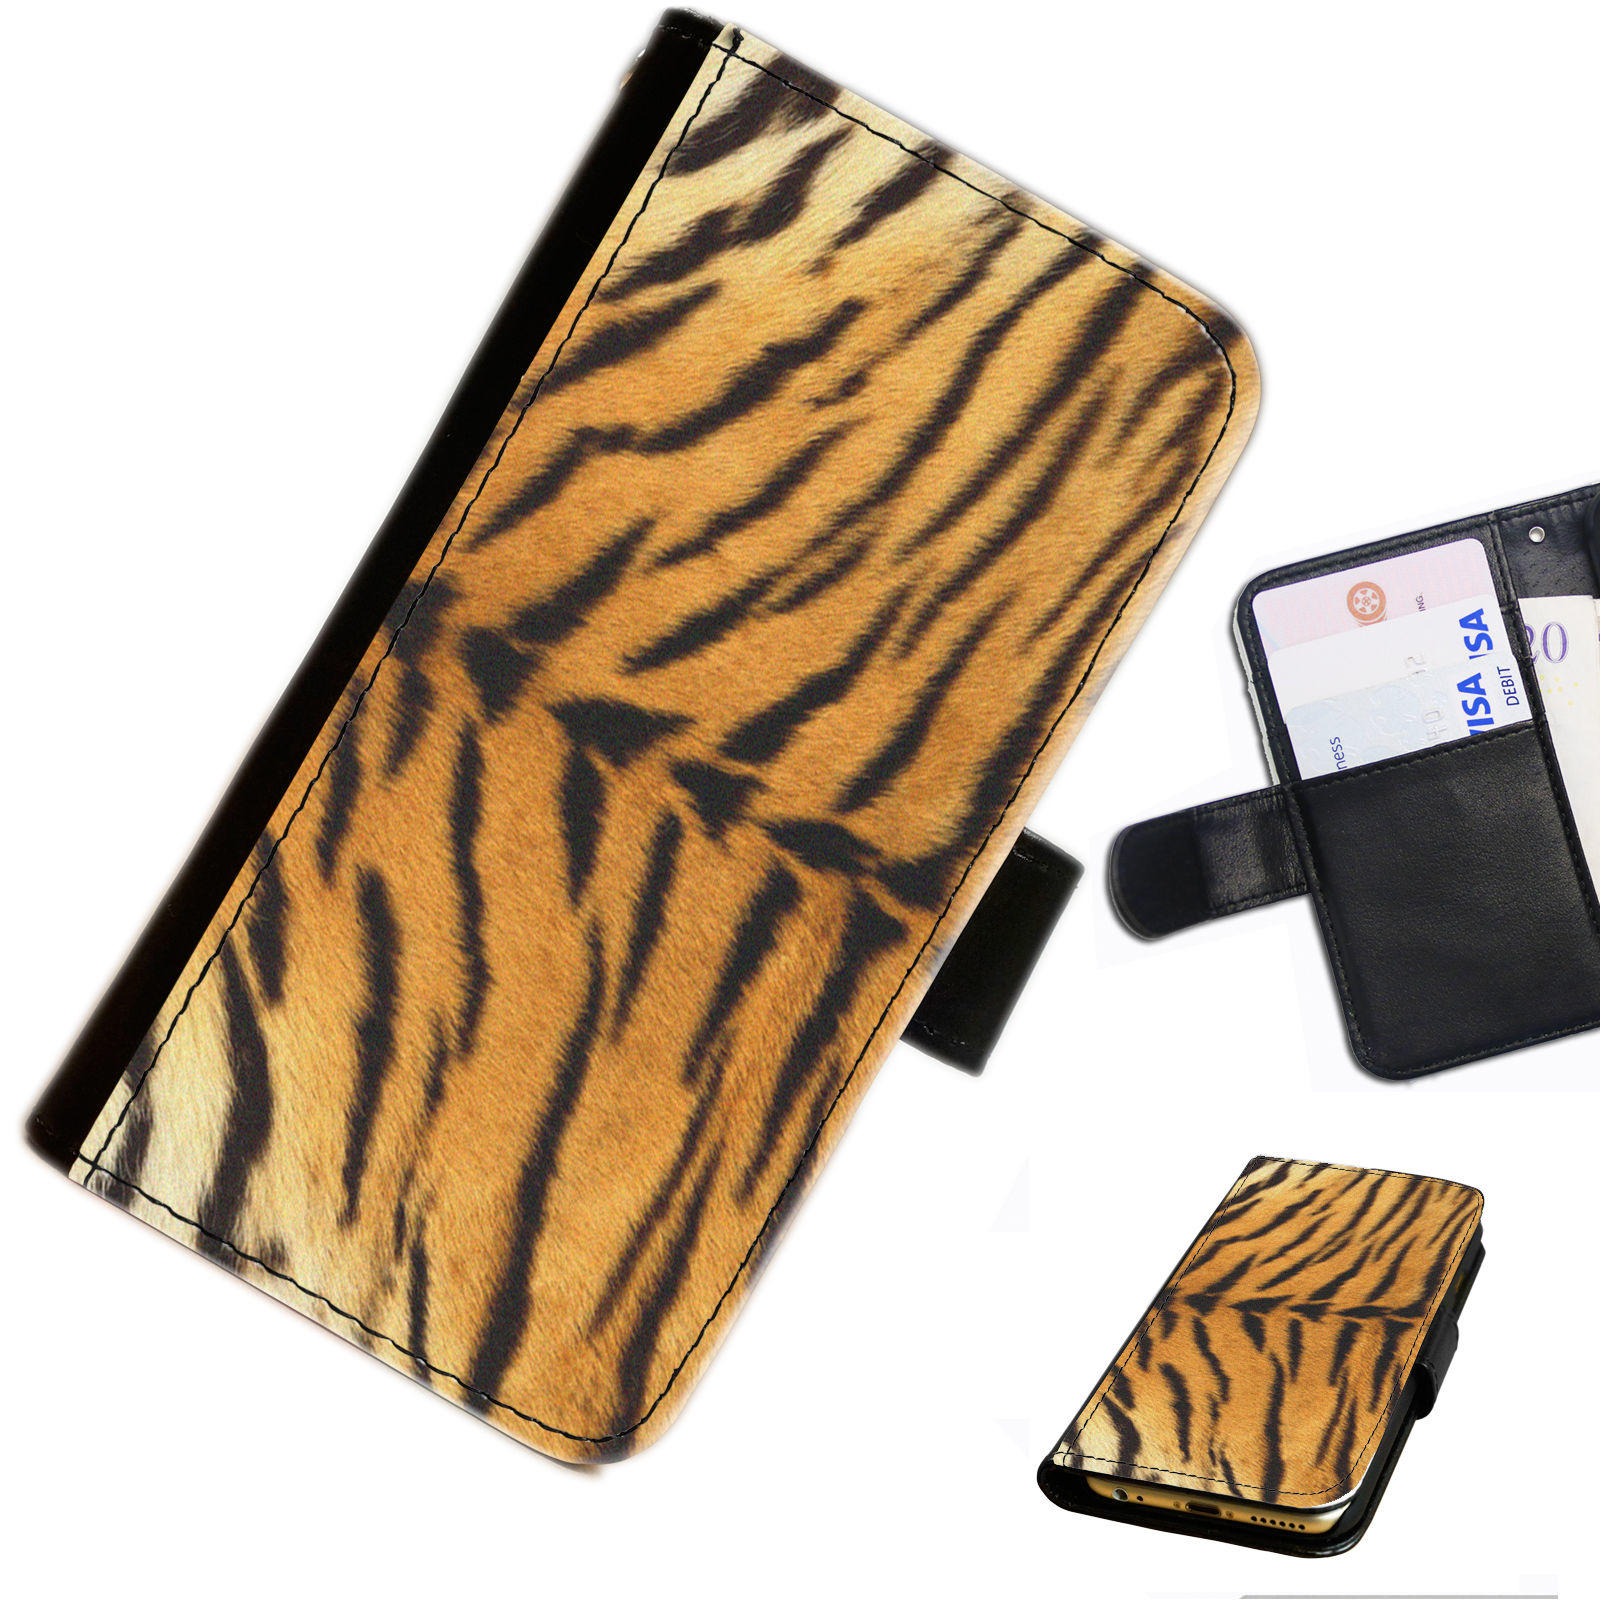 SKIN 14 TIGER PRINT PRINTED LEATHER WALLET/FLIP CASE COVER FOR MOBILE PHONE